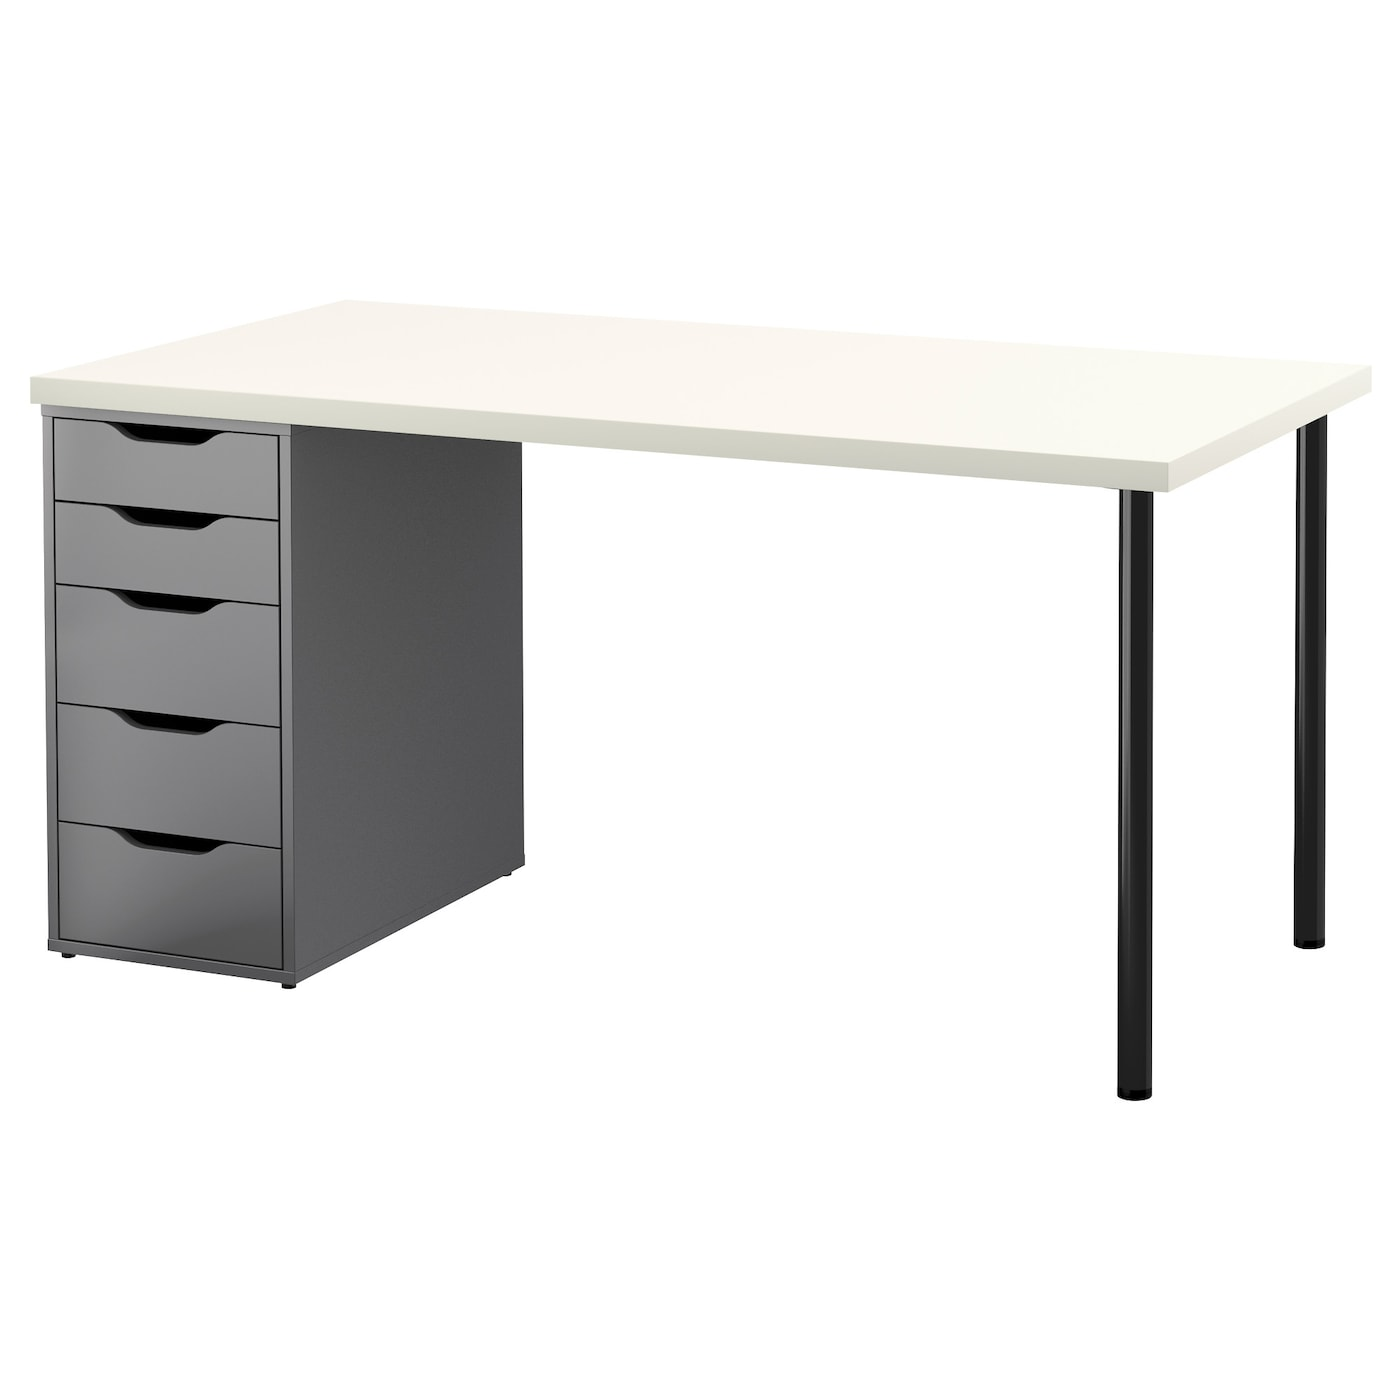 alex linnmon table white grey 150 x 75 cm ikea. Black Bedroom Furniture Sets. Home Design Ideas